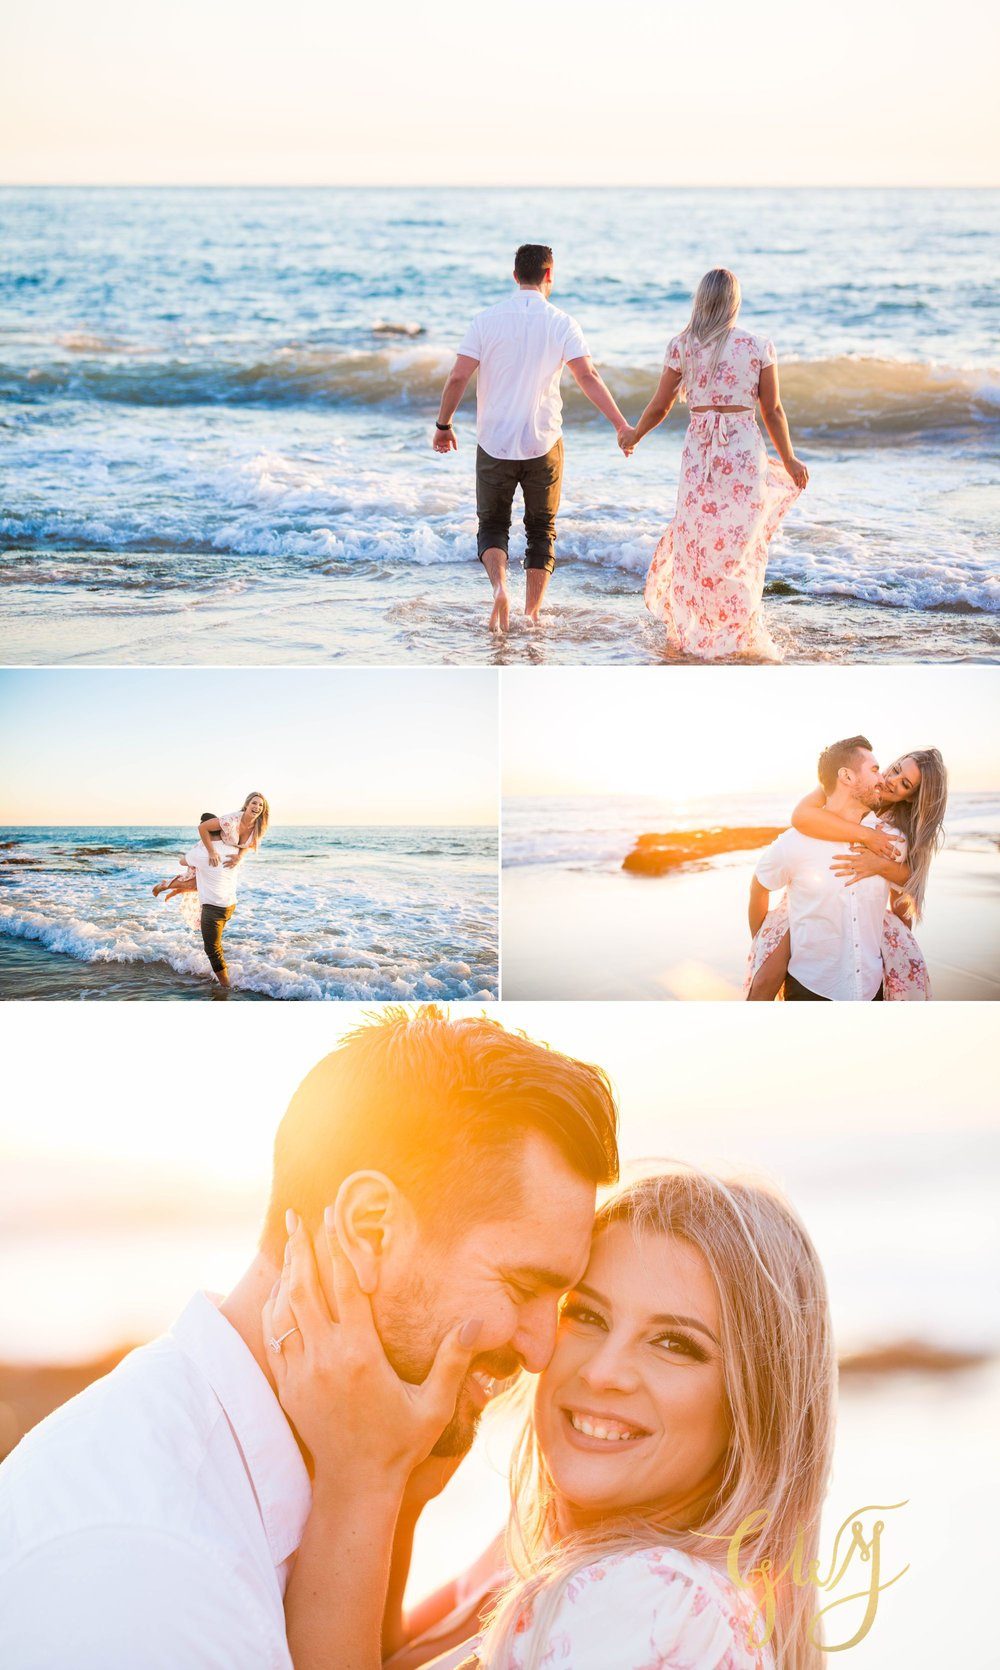 Christien + Crystal Back Bay Newport Crystal Cove Reef Point Sunset Engagement Portrait Session by Glass Woods Media 19.jpg